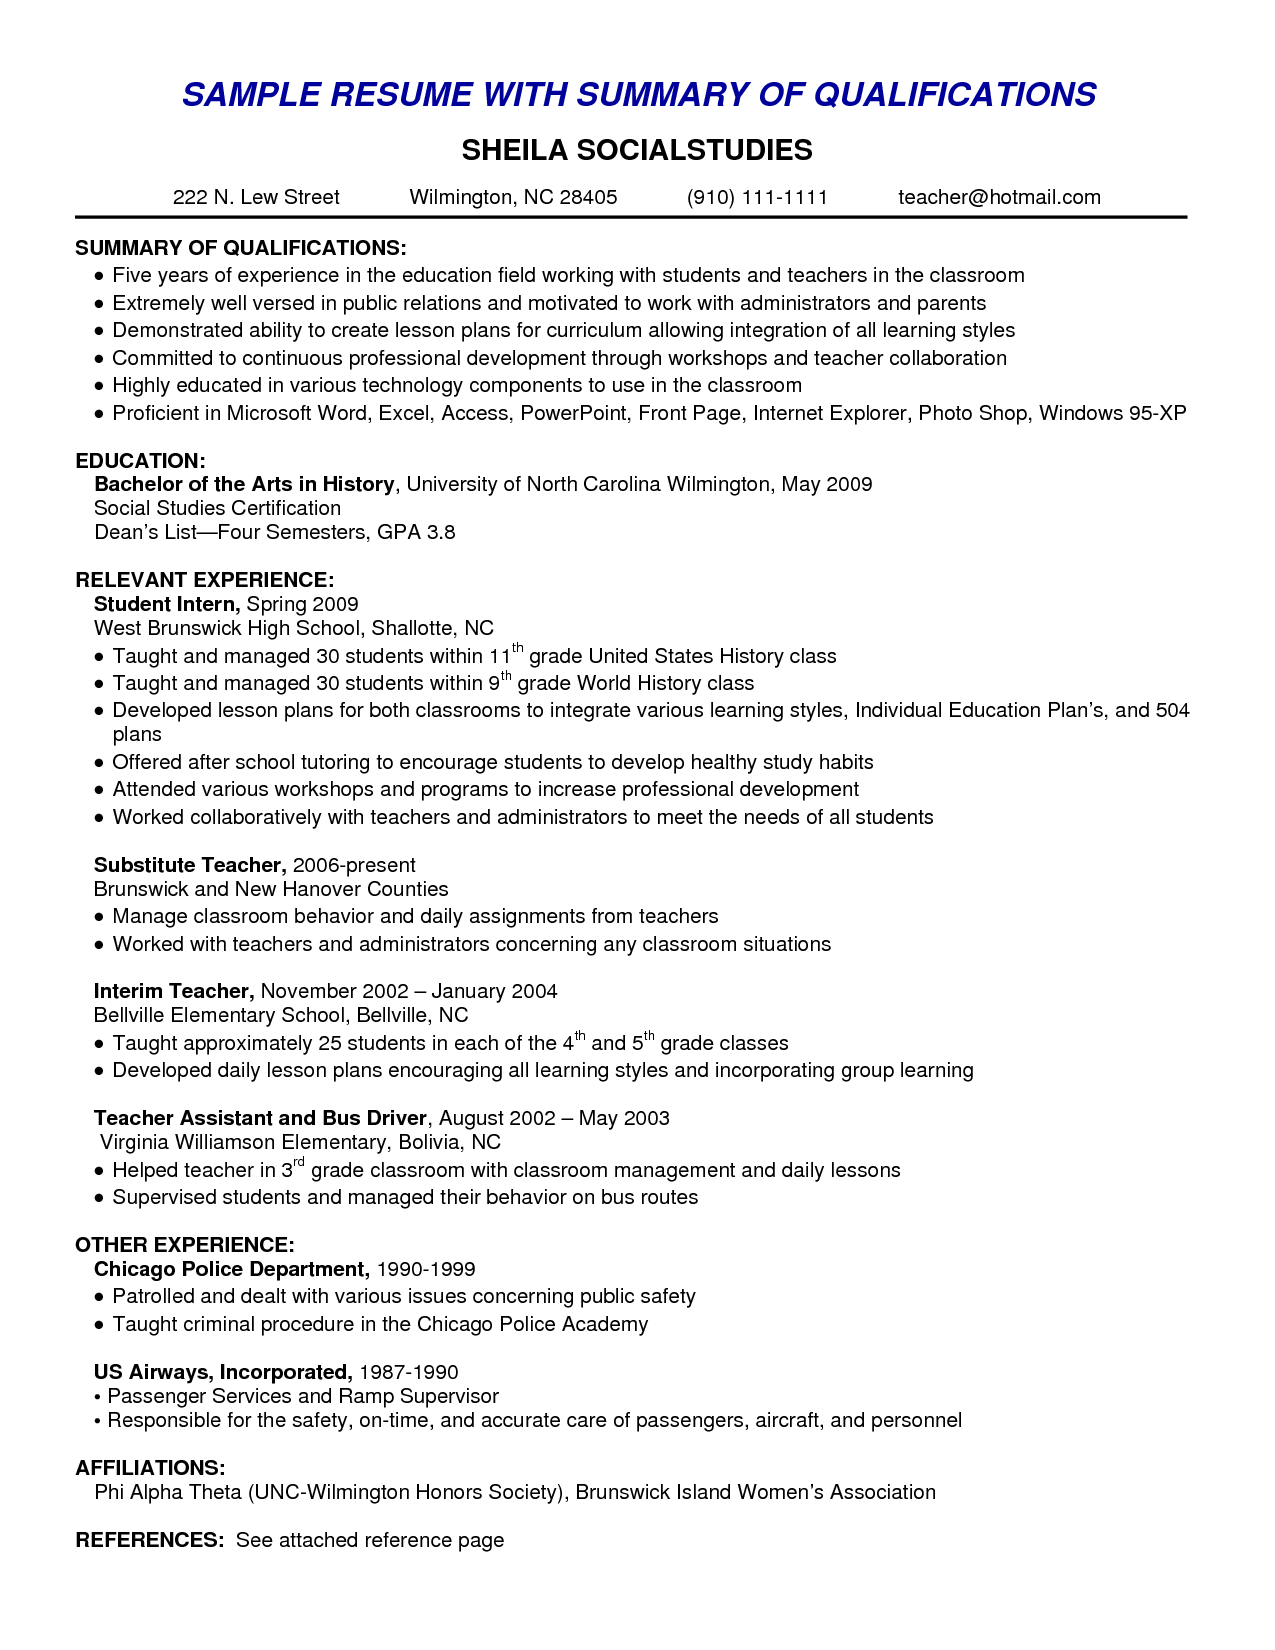 Professional Examples Of Resumes 9 Professional Summary Examples Samplebusinessresume